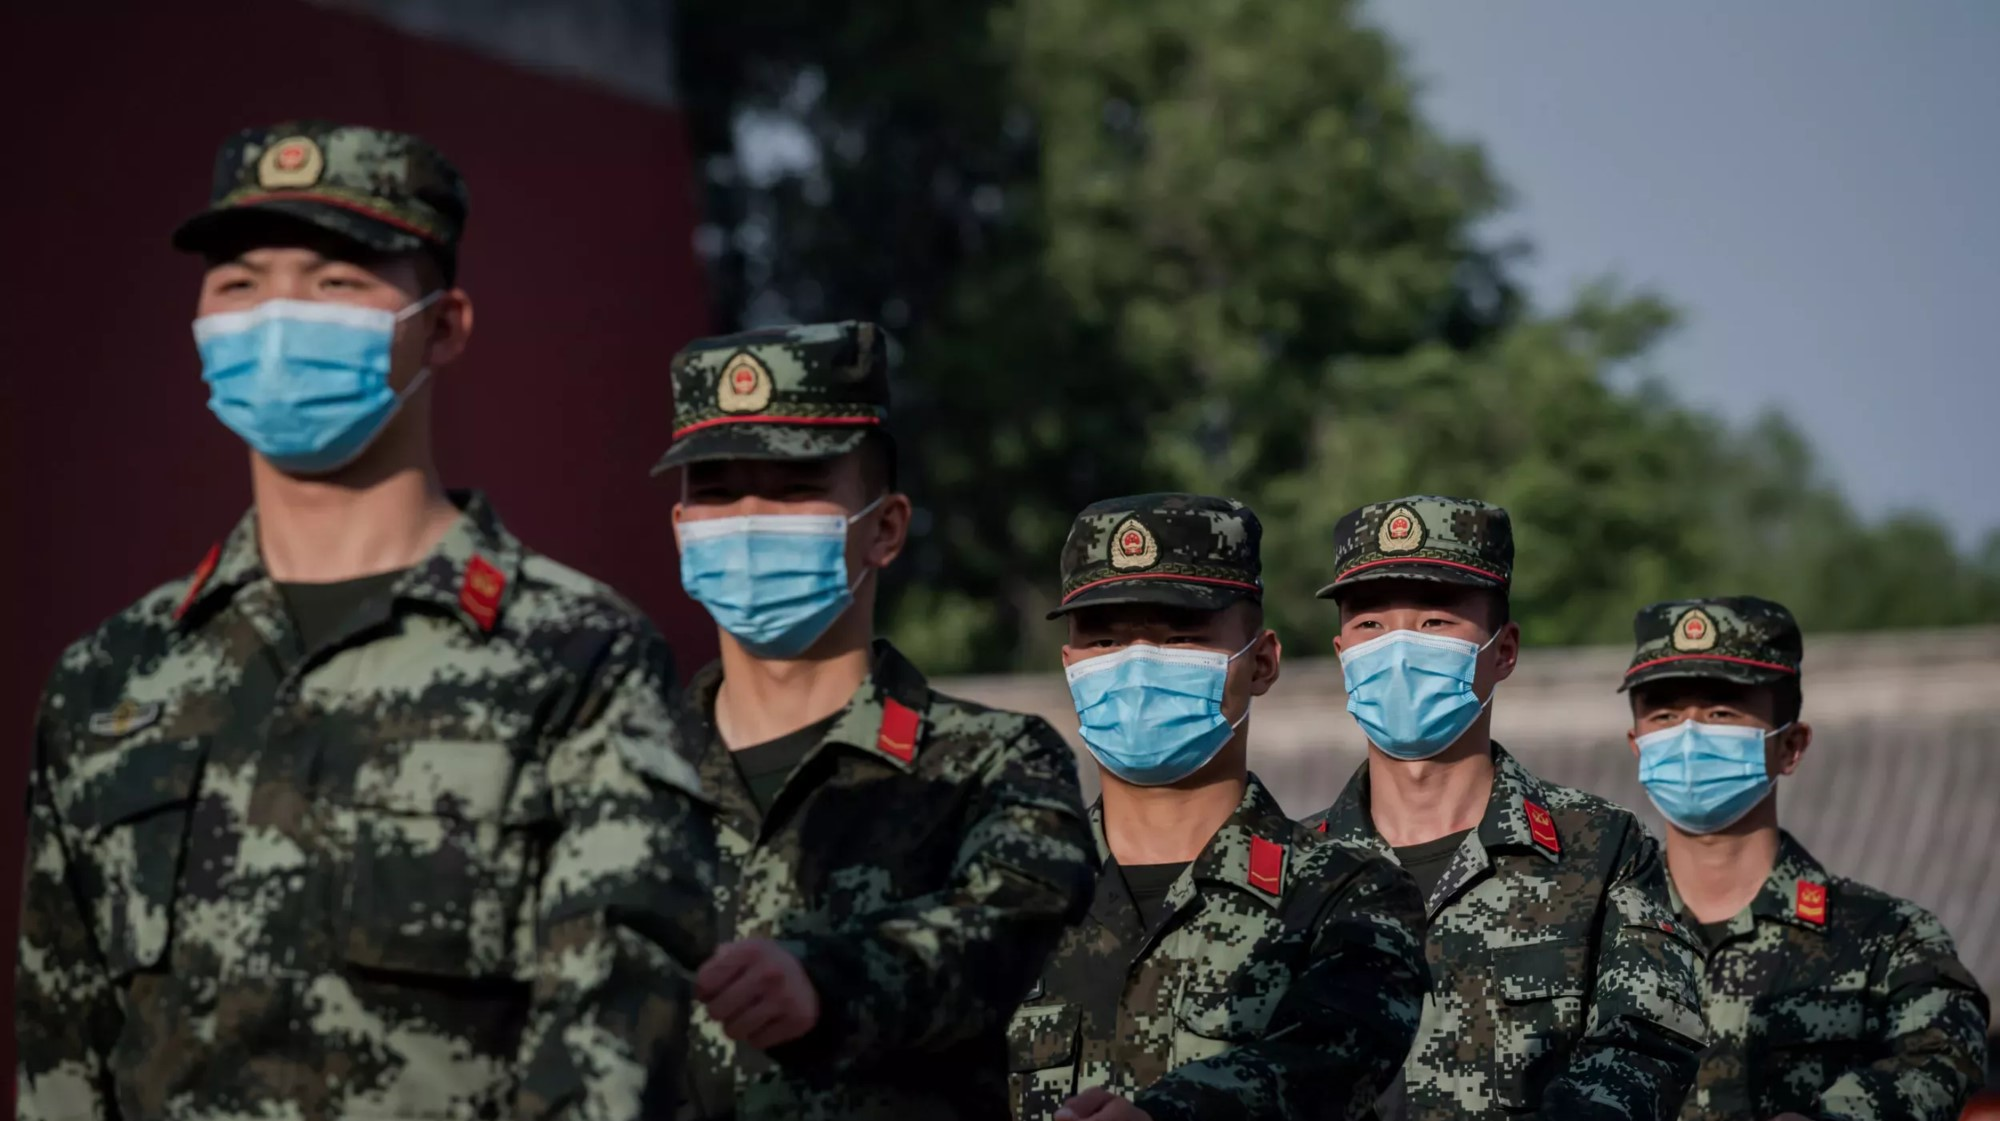 The Chinese Communist Party Is Committing Genocide. Now. You Can Stop It. | Opinion